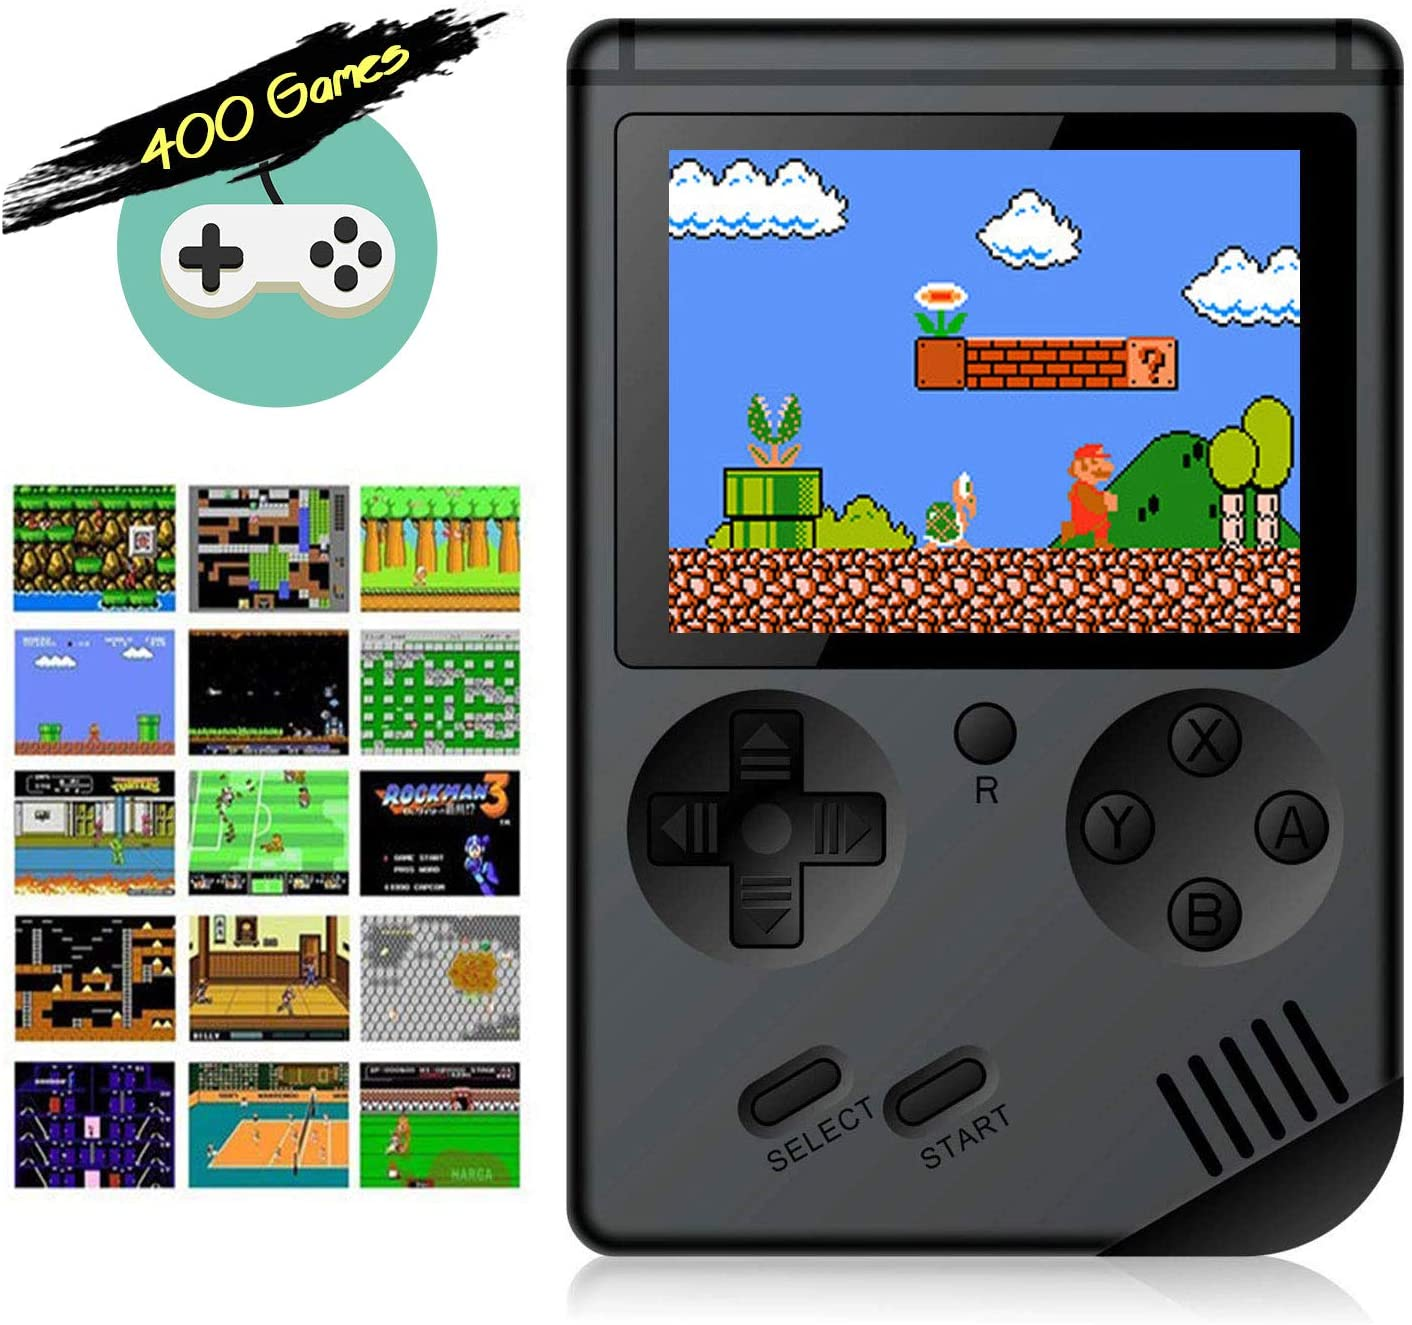 Aisallin Retro FC Handheld Game Console with 400 Classic Games for Kids Adult, 3 Inch HD Screen FC Video Game Console with Much Childhood Fun Support TV Output USB Rechargeable (Black)